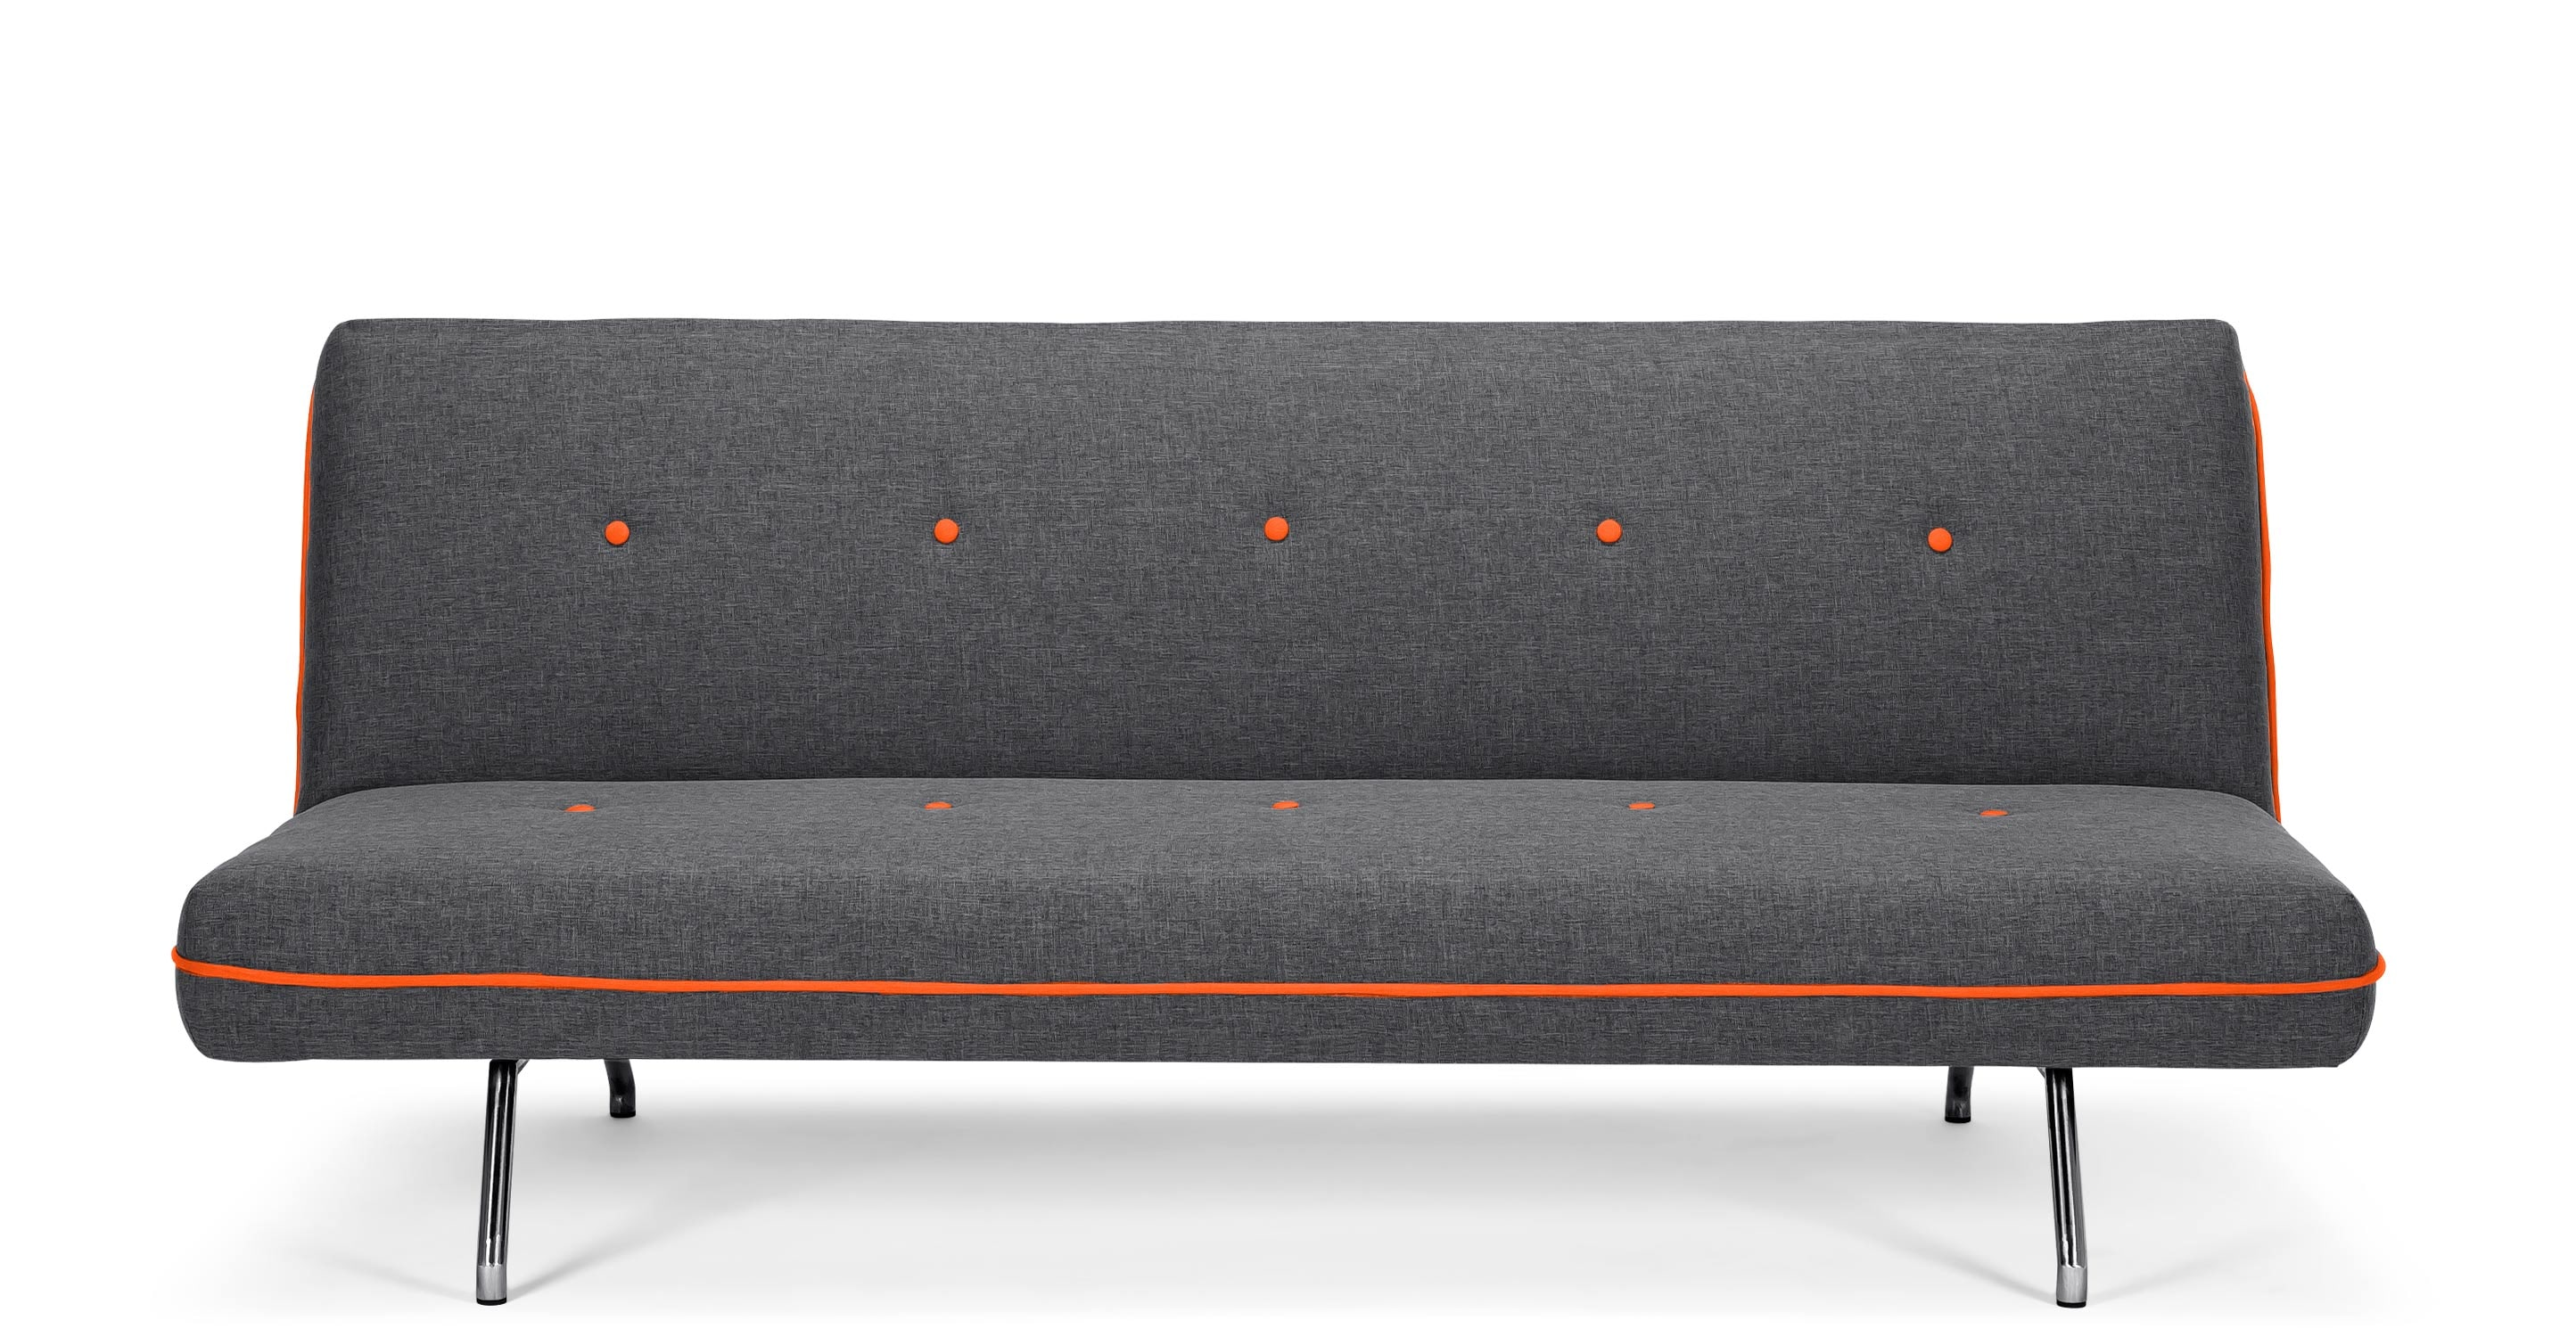 Great sofabed miki a sofa bed, in cygnet grey kjbdvdf